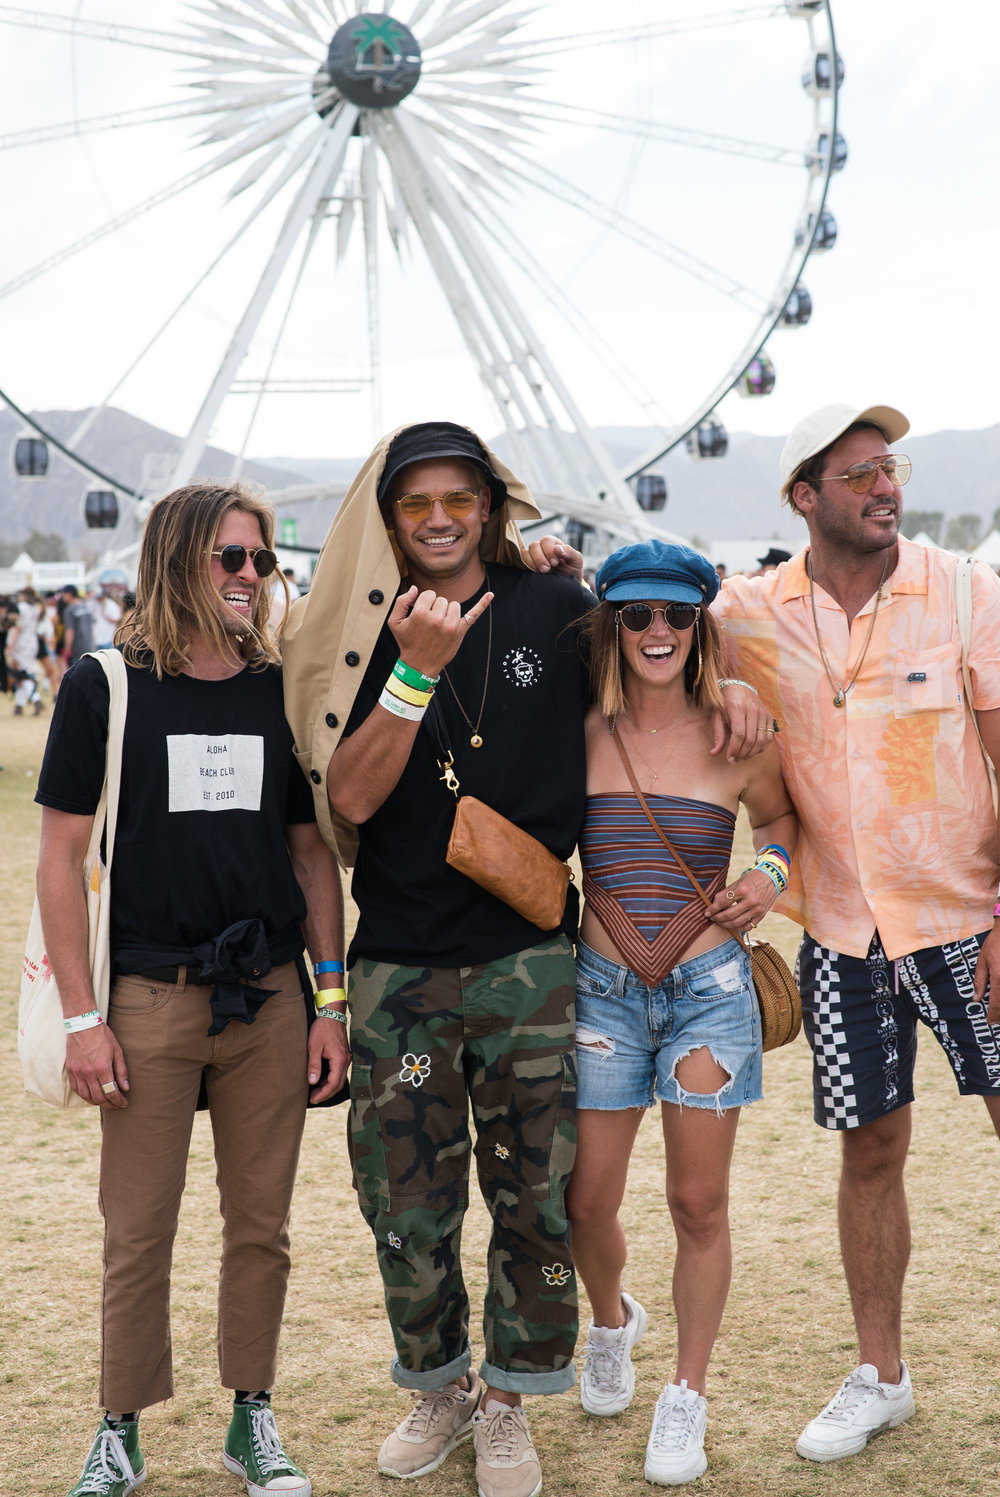 PLNT_MAG_COACHELLA_PHOTOS_81.JPG